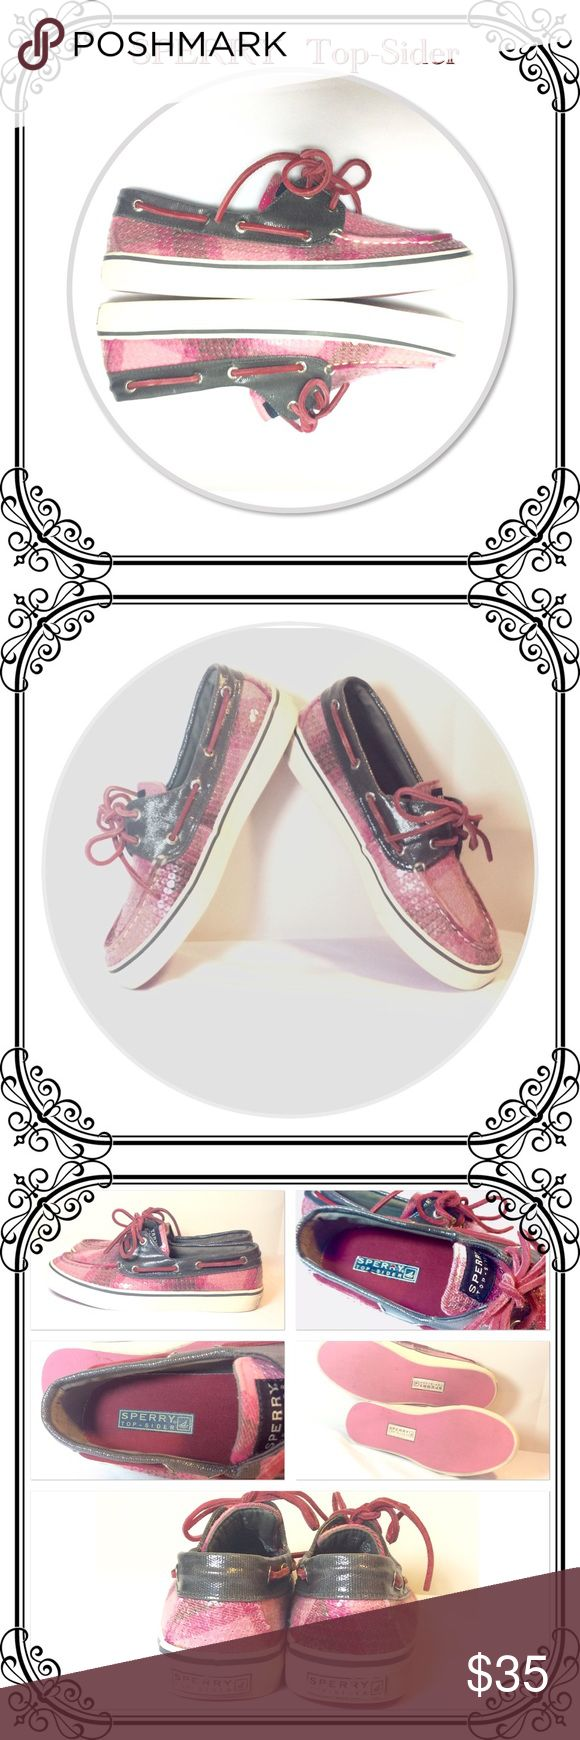 SPERRY Boat Shoes. OBO Excellent Used Condition, Like new almost! Dark gray with plaid pink and cranberry. Size 6m women. Sperry Top-Sider Shoes Flats & Loafers